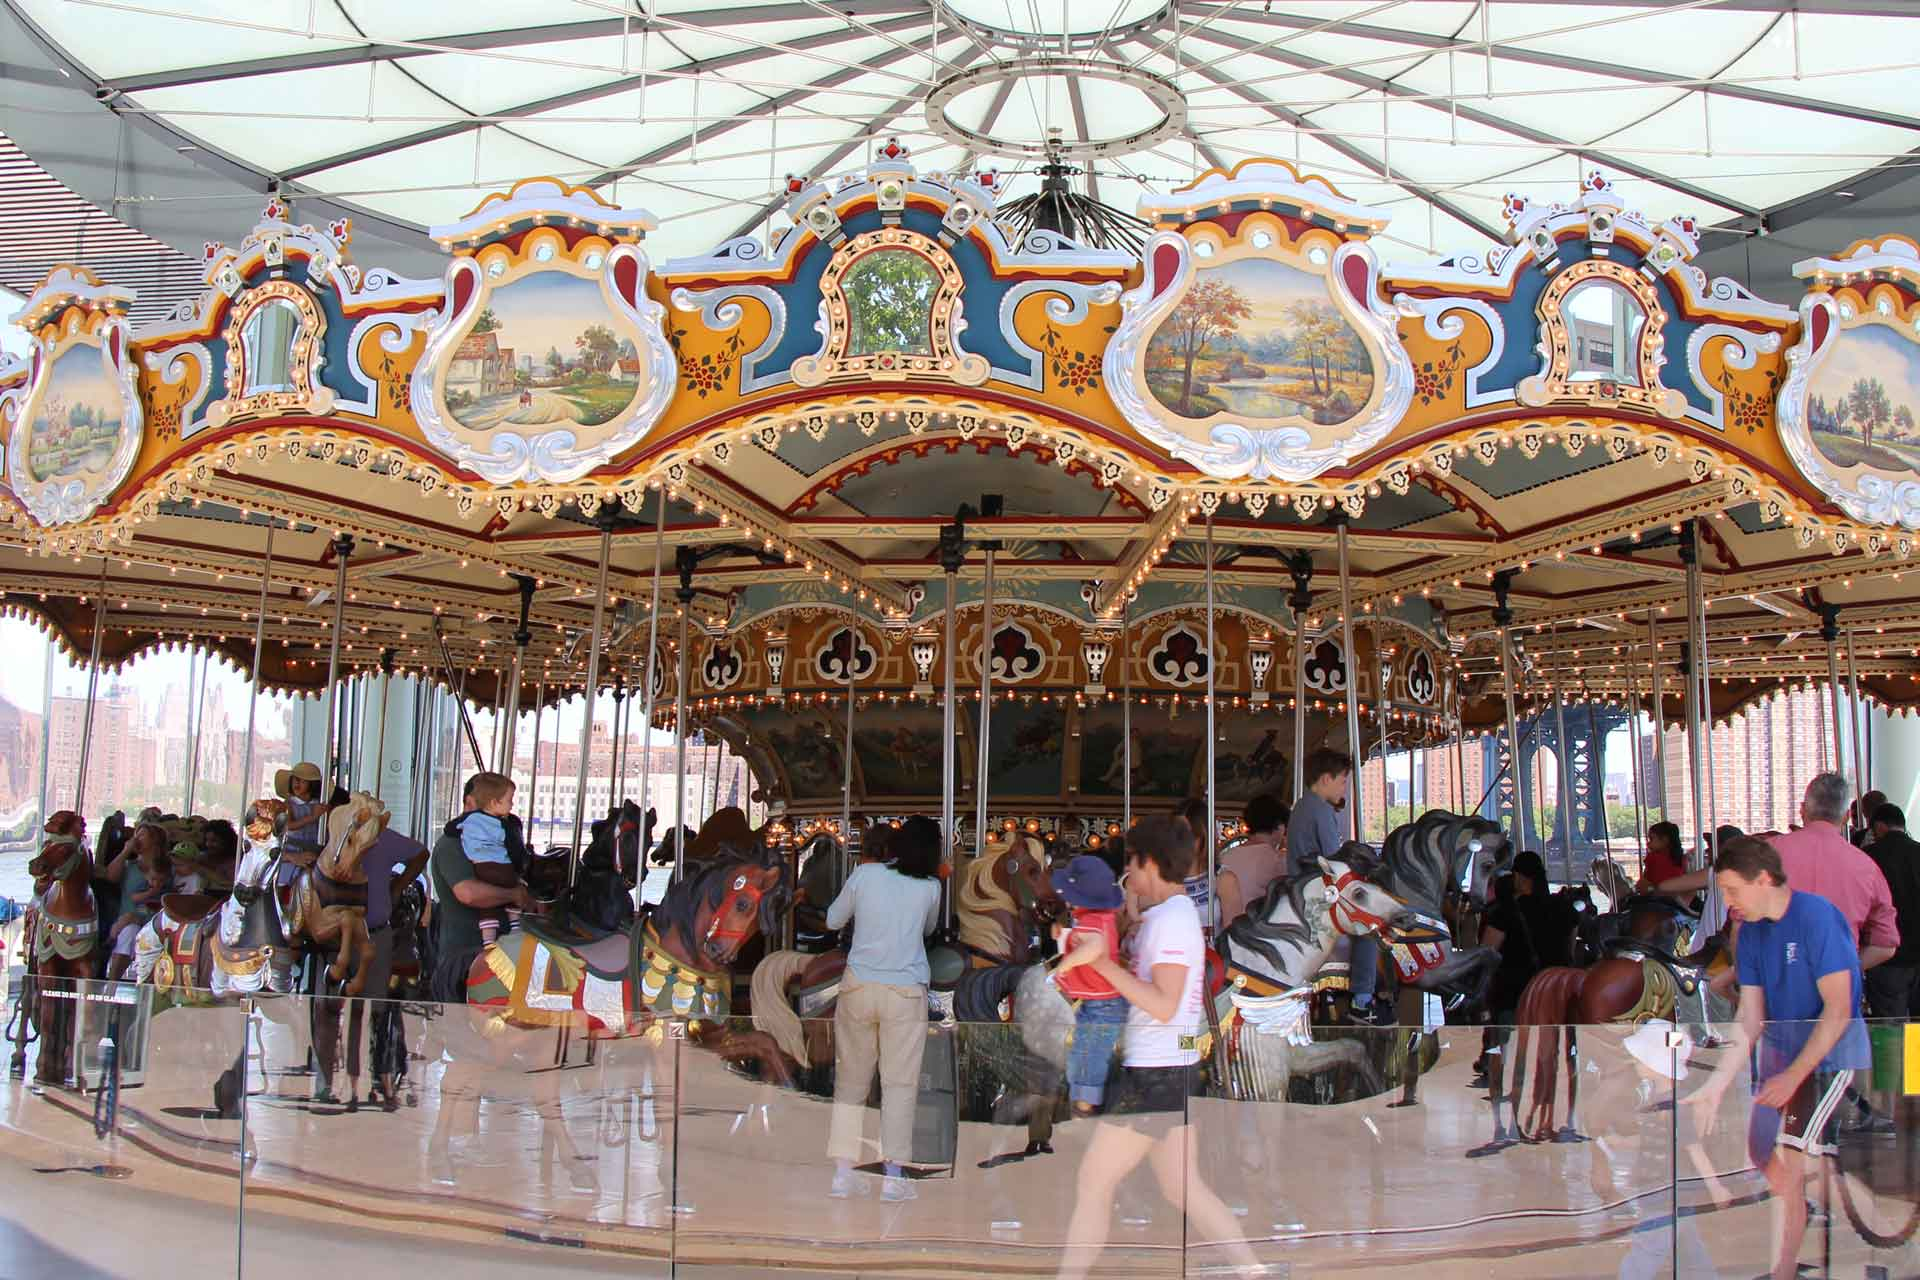 Carousel in Brooklyn Bridge Park